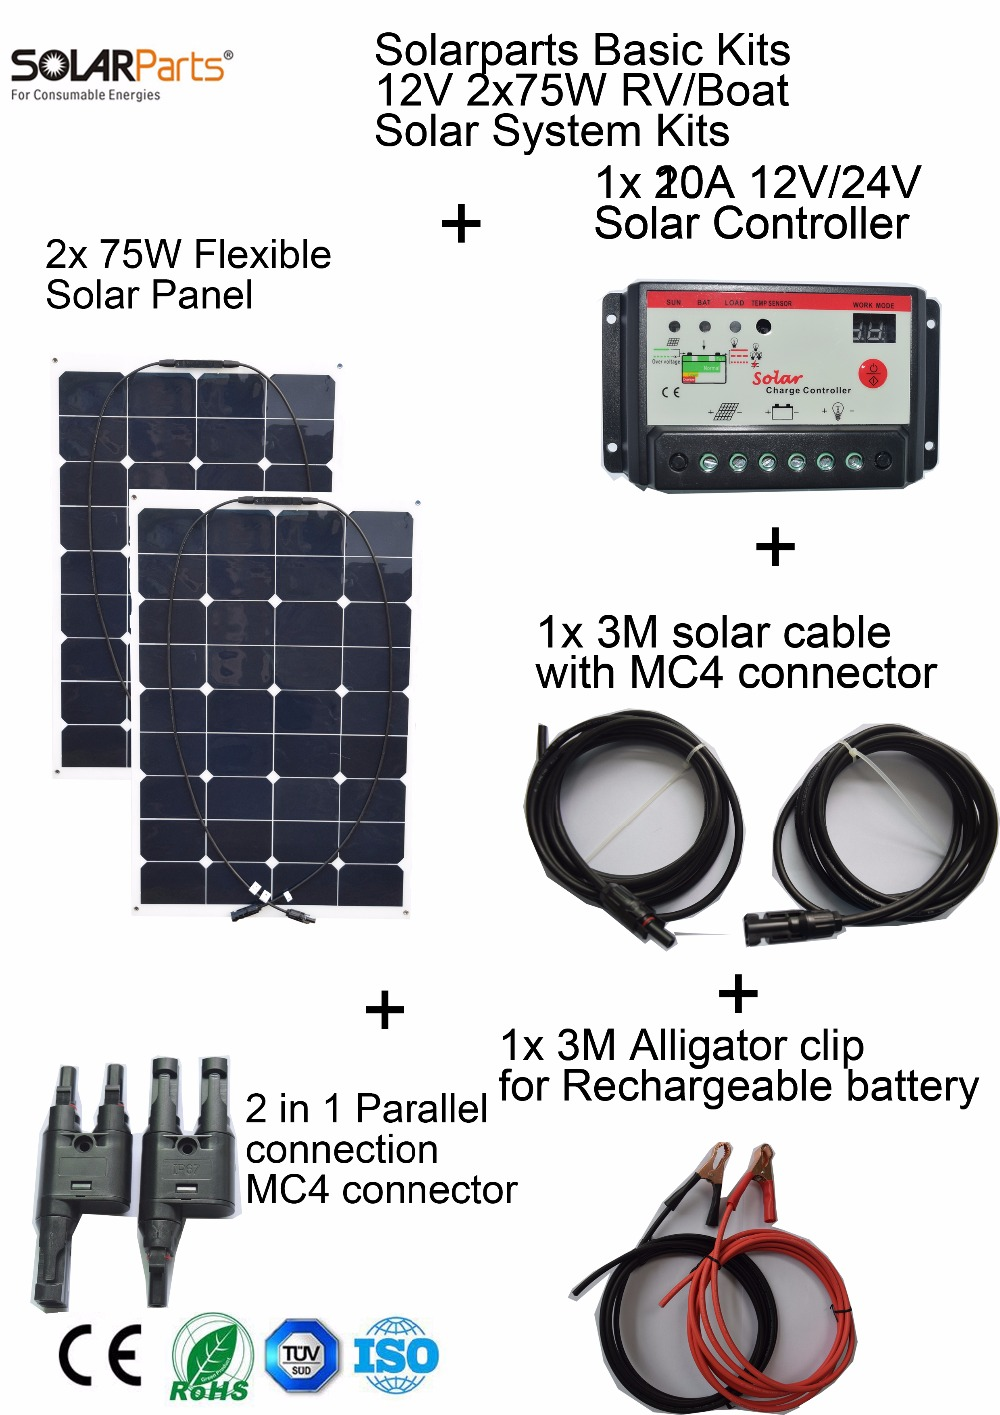 Boguang Basic Kits 12V 2x75W 150w DIY RV/Marine Solar System Kits flexible solar panel+controller+cable outdoor light led kit boguang 500w semi flexible solar panel solar system efficient cell diy kit module 50a mppt controller adapter mc4 connector